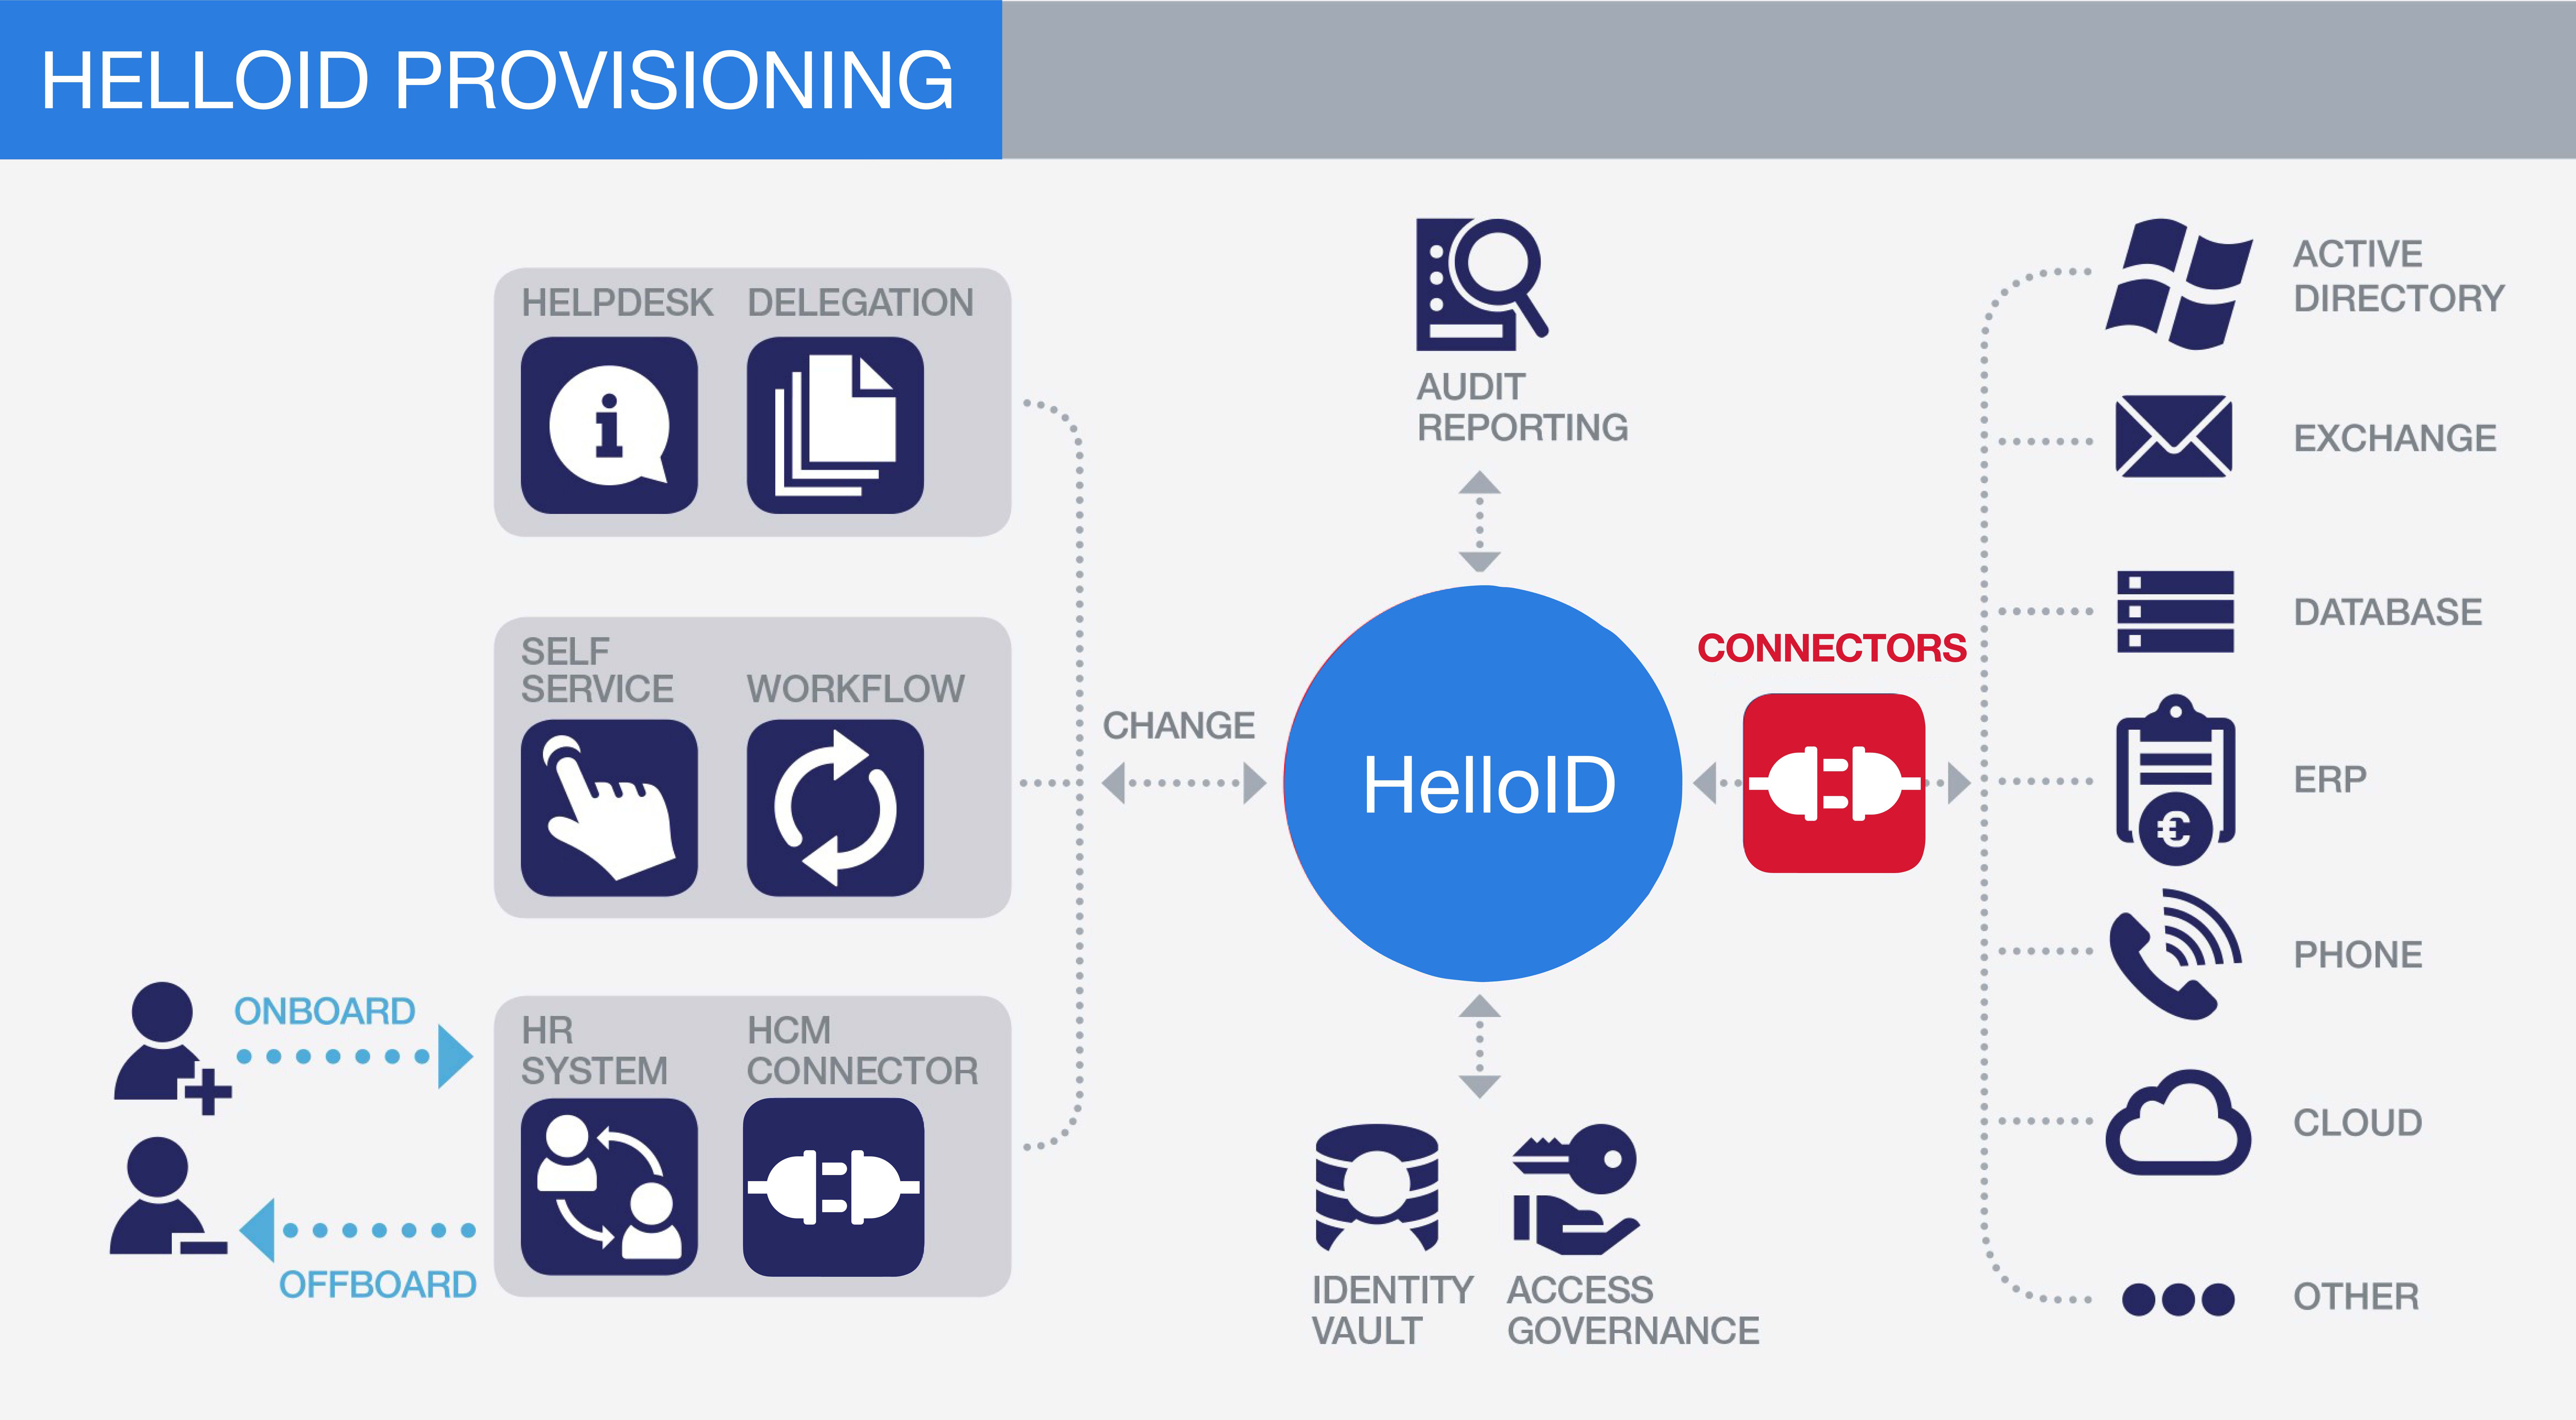 helloid provisioning